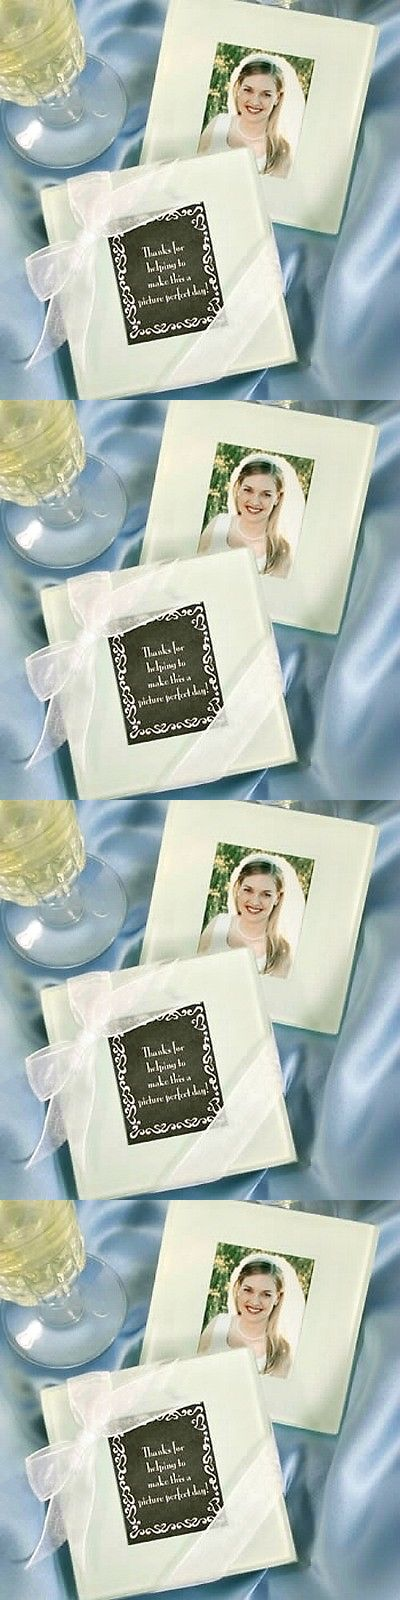 Favors and Party Bag Fillers 26385: 50 Glass Photo Coaster Set Of 2 Wedding Shower Bridal Favor Party Event Bulk Lot -> BUY IT NOW ONLY: $84.99 on eBay!